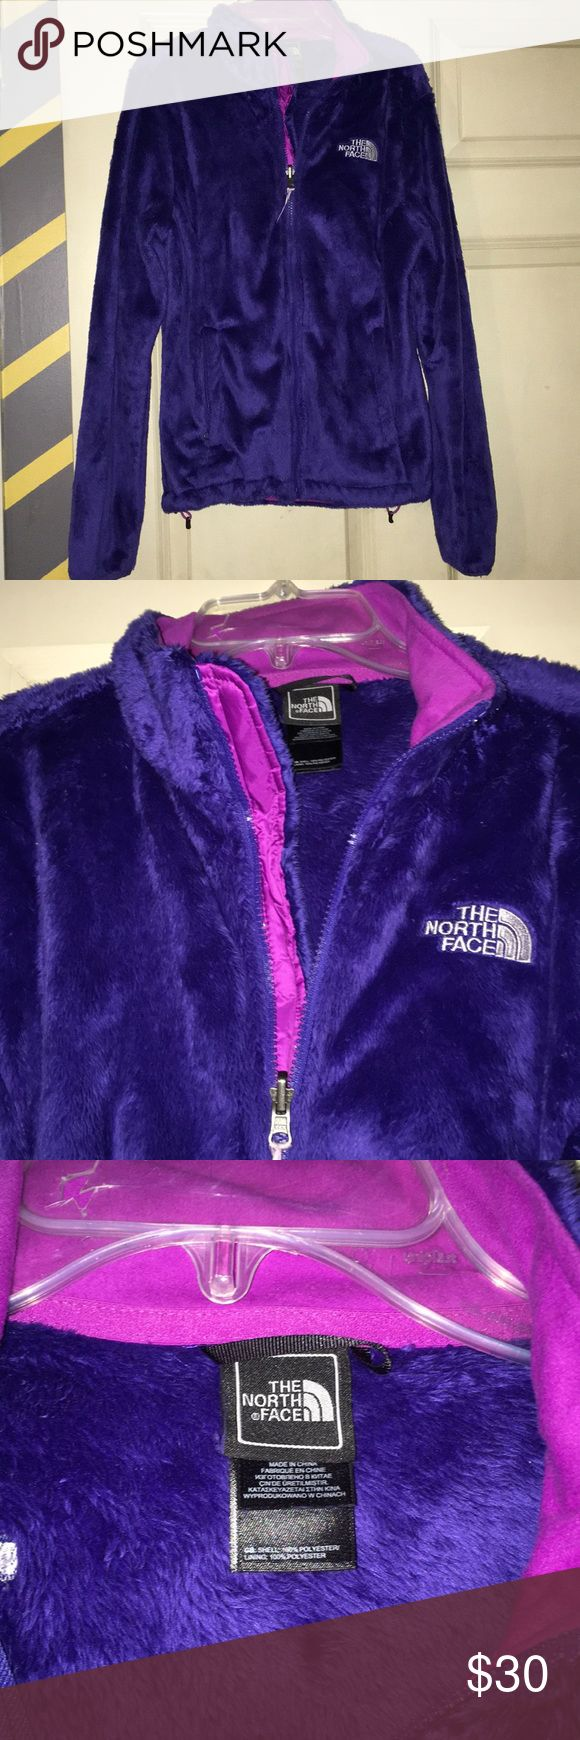 Fuzzy Purple Zip-up North Face Jacket Soft and fuzzy purple north face jacket, worn twice. Has violet accent colors and has an adjustable fit at the bottom. Size small, keeps you very warm North Face Intimates & Sleepwear